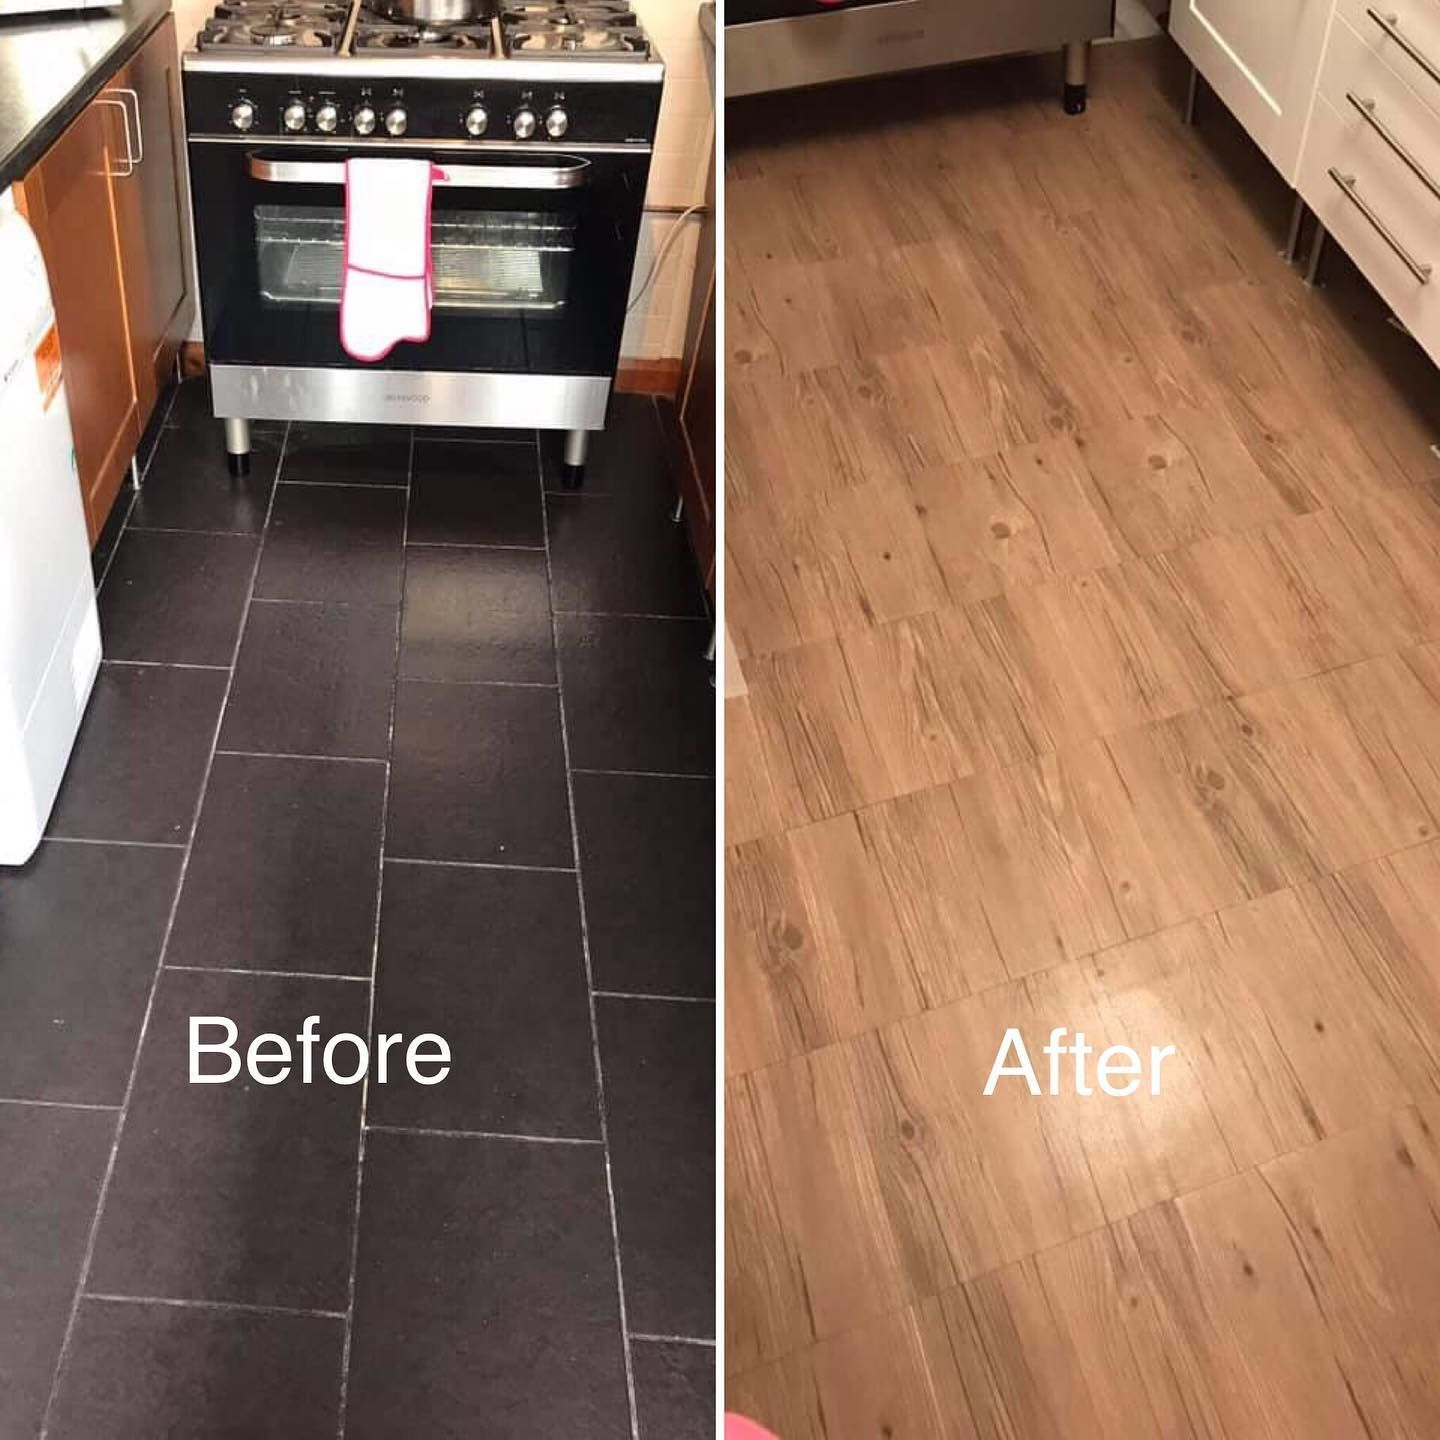 Not In With Your Floor Tiles Cover Them Over Using One Of Our Self Adhesive Vinyl Floor Tile Designs Our Cu In 2020 Floor Tile Design Vinyl Flooring Easy Flooring